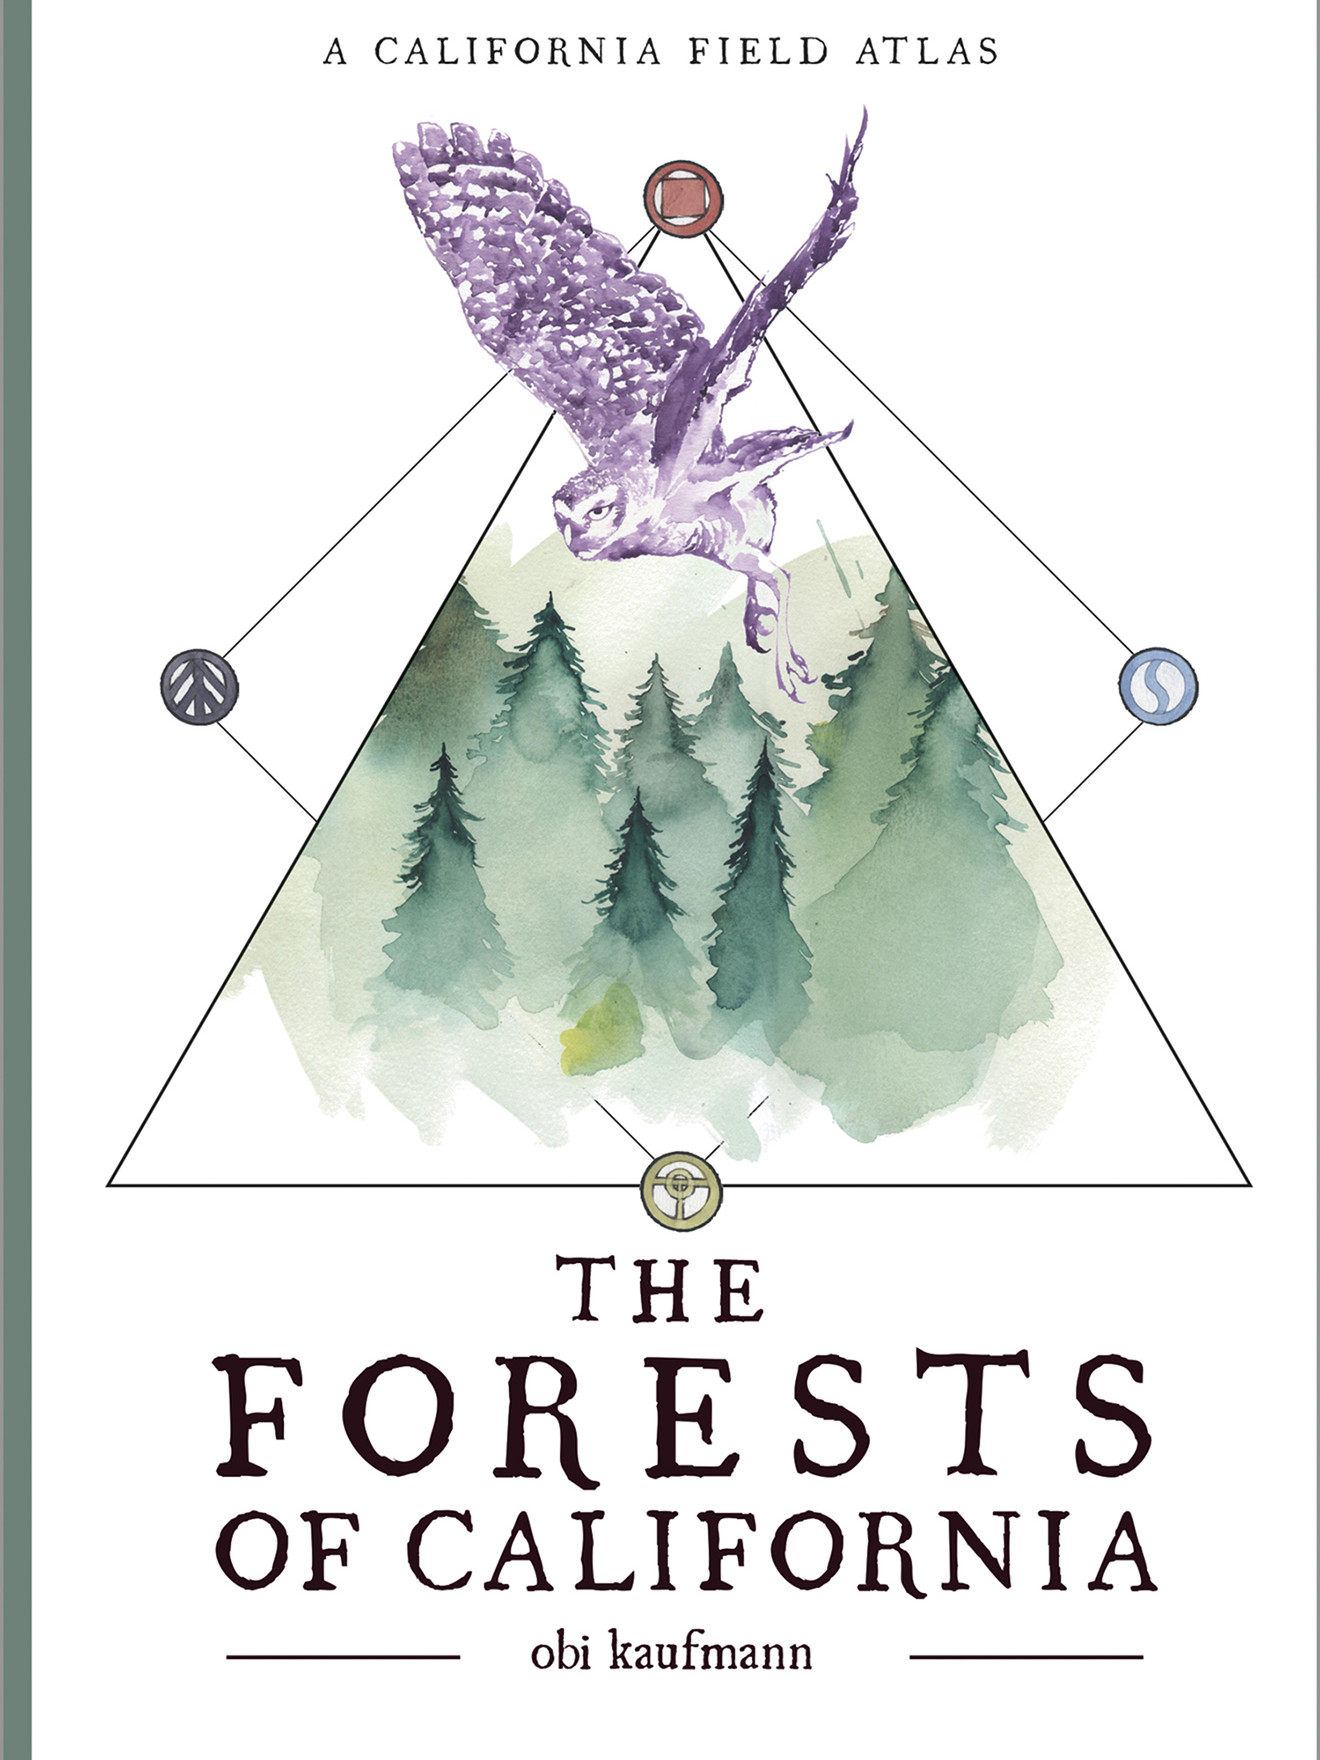 photo of book titled The Forests of California by Obi Kaufmann